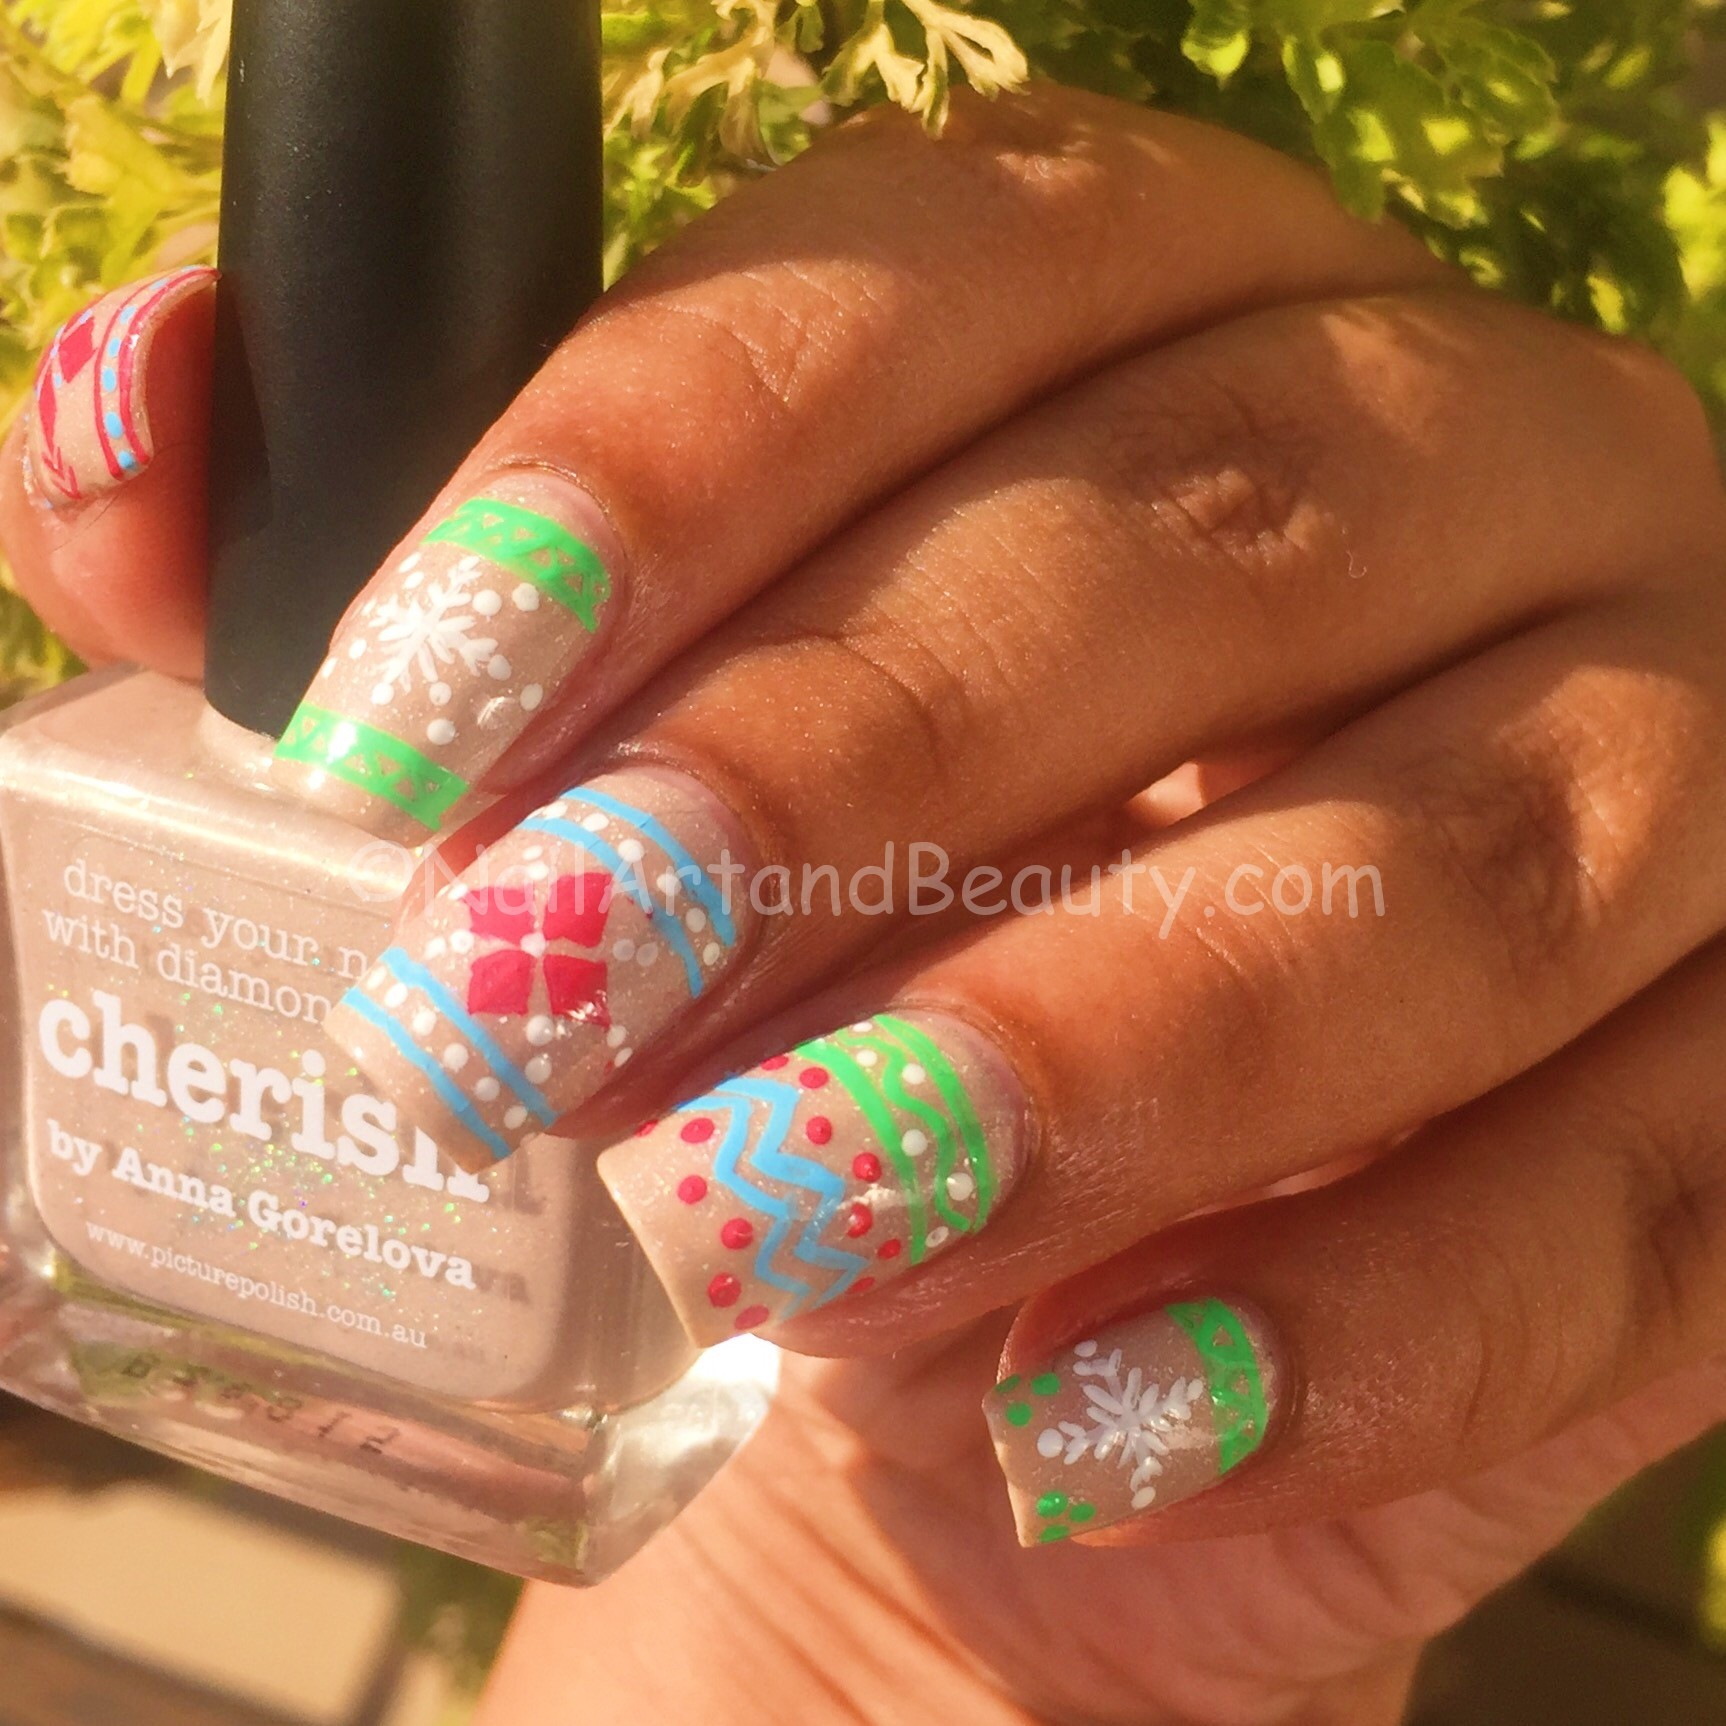 Candy Colors Sweater Mani on Picture Polish Cherish